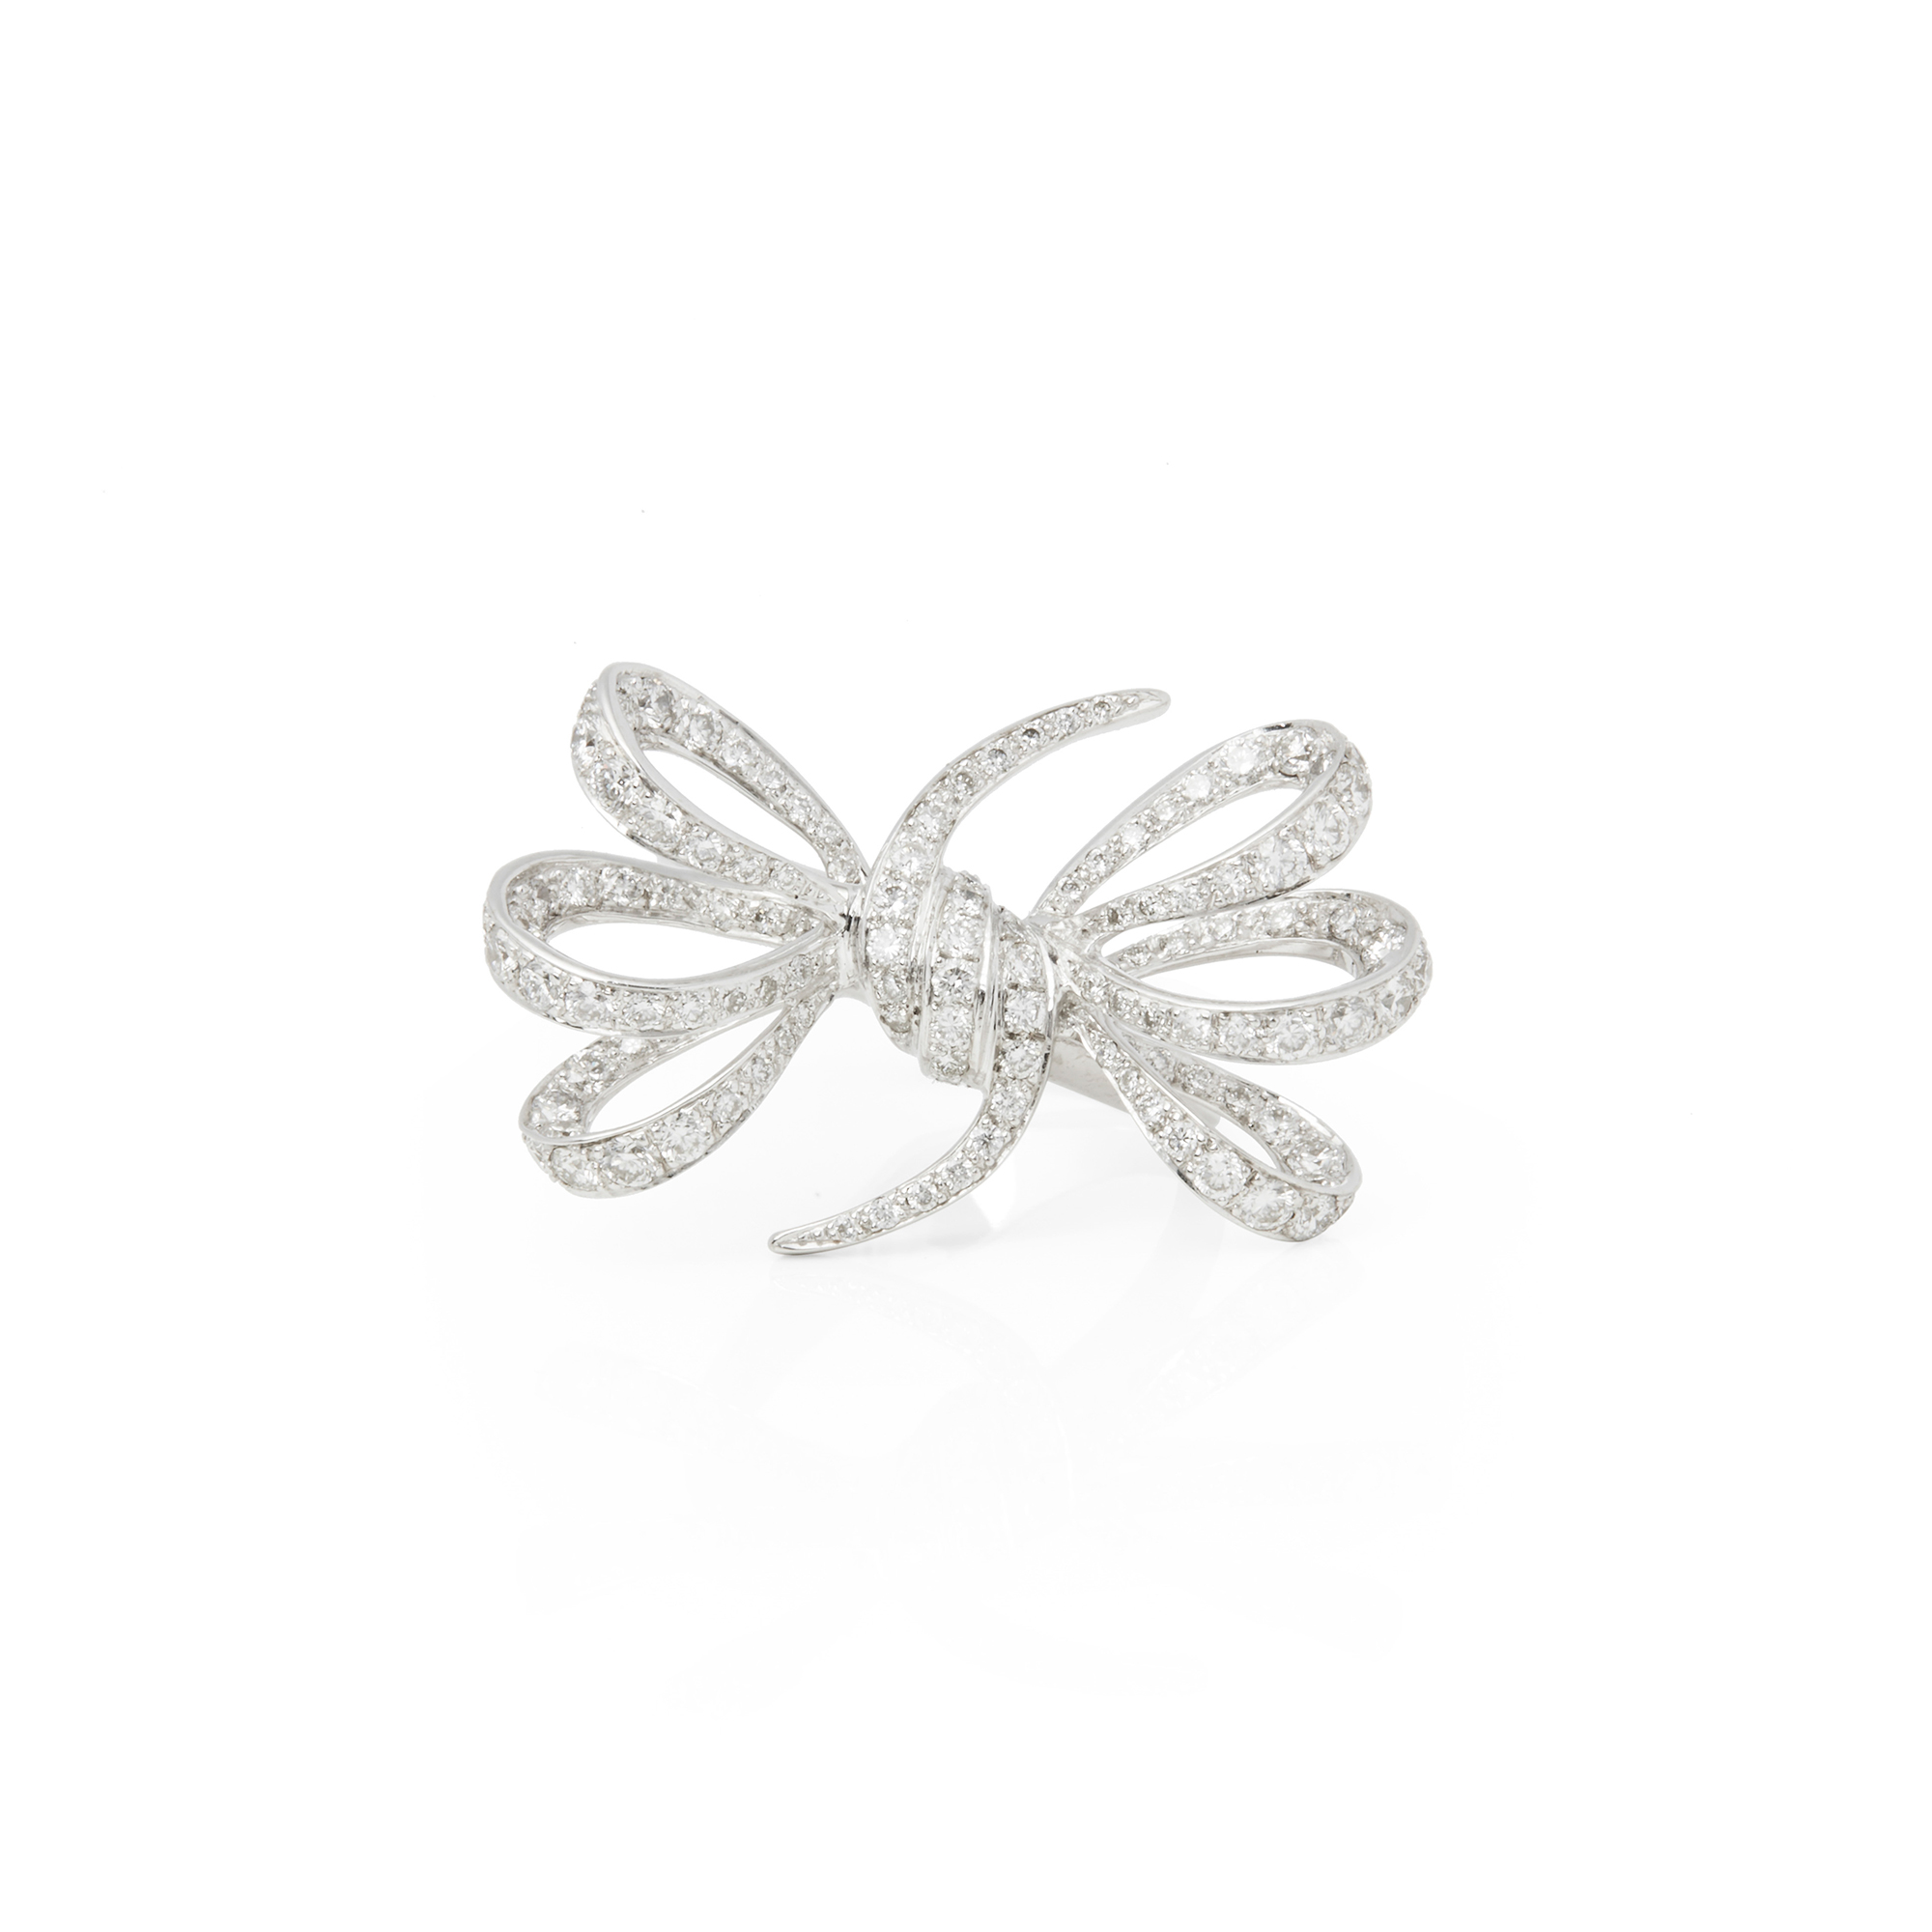 Stephen Webster 18k White Gold Forget Me Knot Diamond Ring Comj387 Ebay